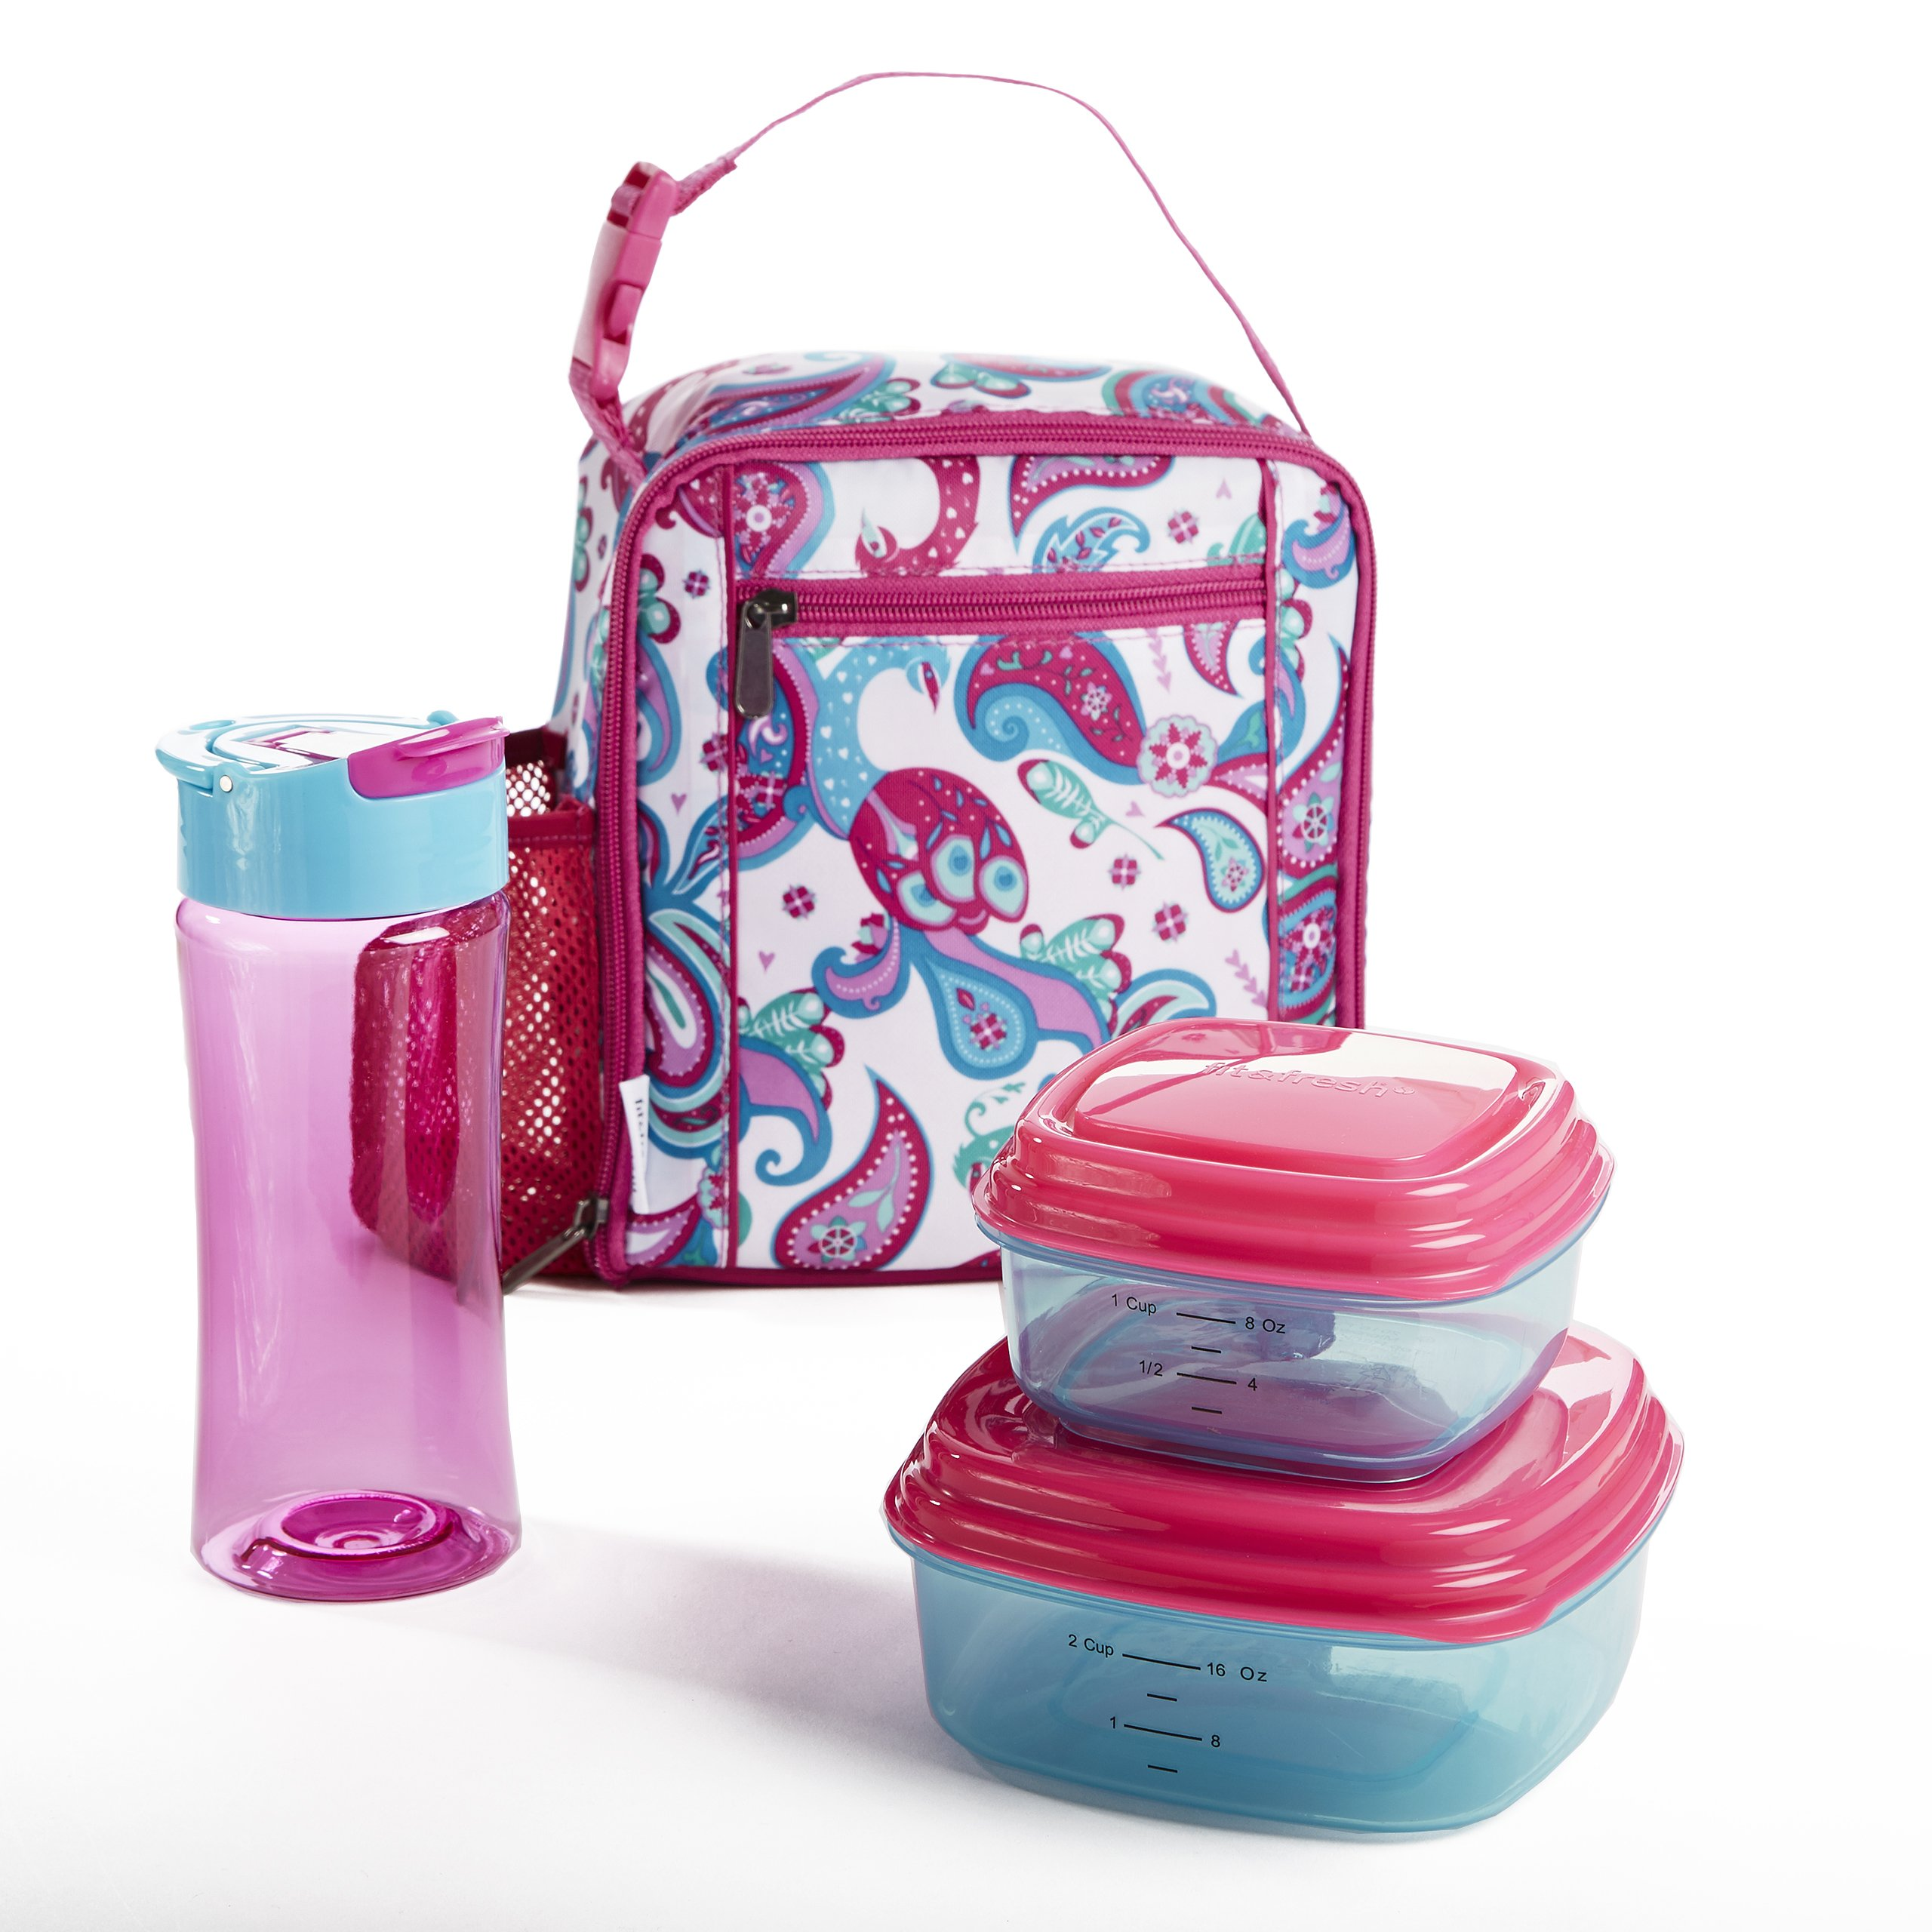 Fit & Fresh Scout Lunch Kit for Kids with BPA-Free Containers and Water Bottle, Peacock Paisley